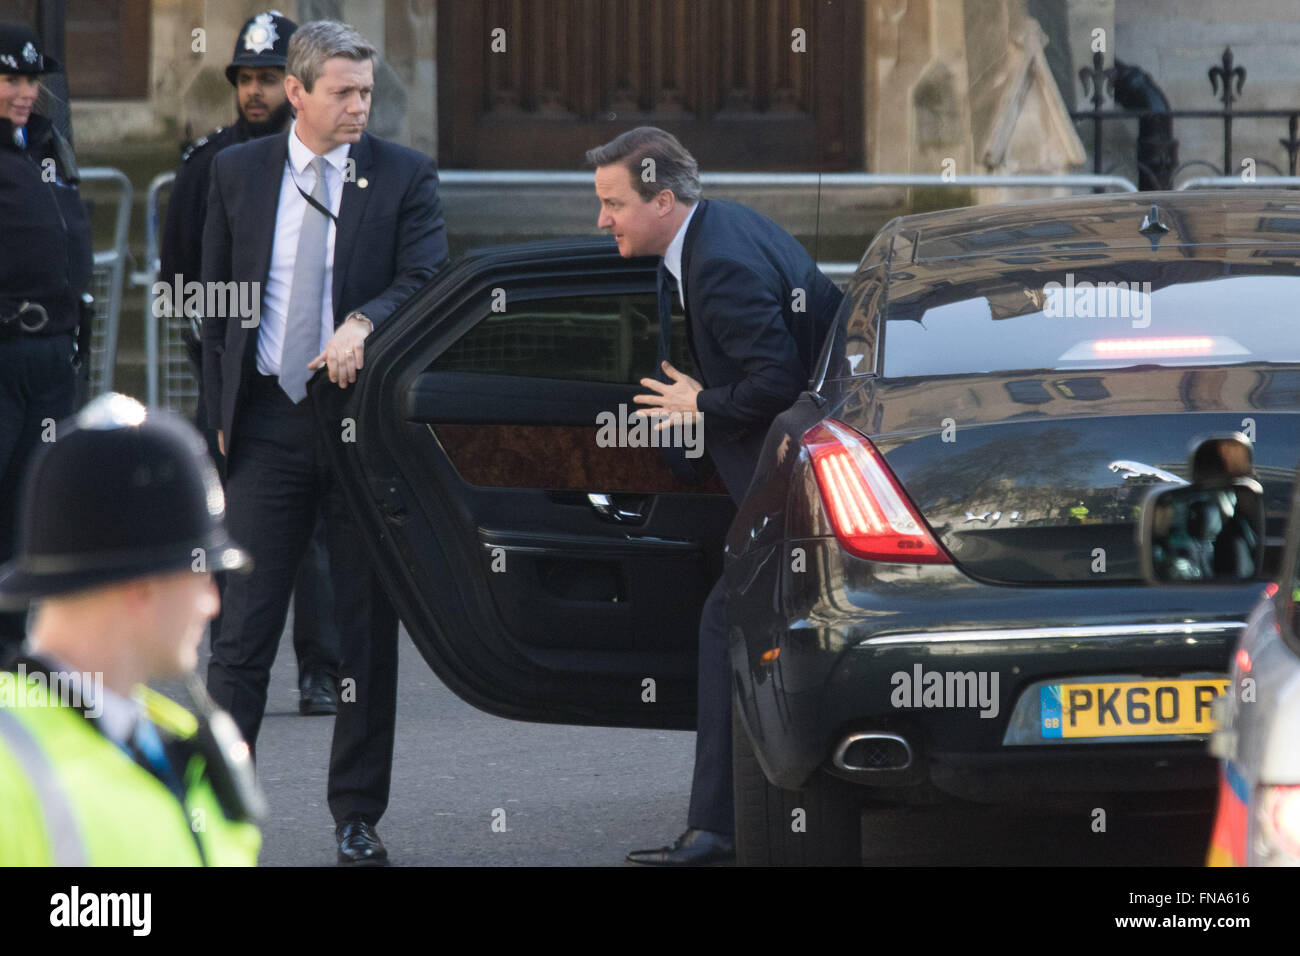 Westminster Abbey, London, March 14th 2016.  Her Majesty The Queen, Head of the Commonwealth, accompanied by The Duke of Edinburgh, The Duke and Duchess of Cambridge and Prince Harry attend the Commonwealth Service at Westminster Abbey on Commonwealth Day. PICTURED: Prime Minister David Cameron arrives. Credit:  Paul Davey/Alamy Live News Stock Photo